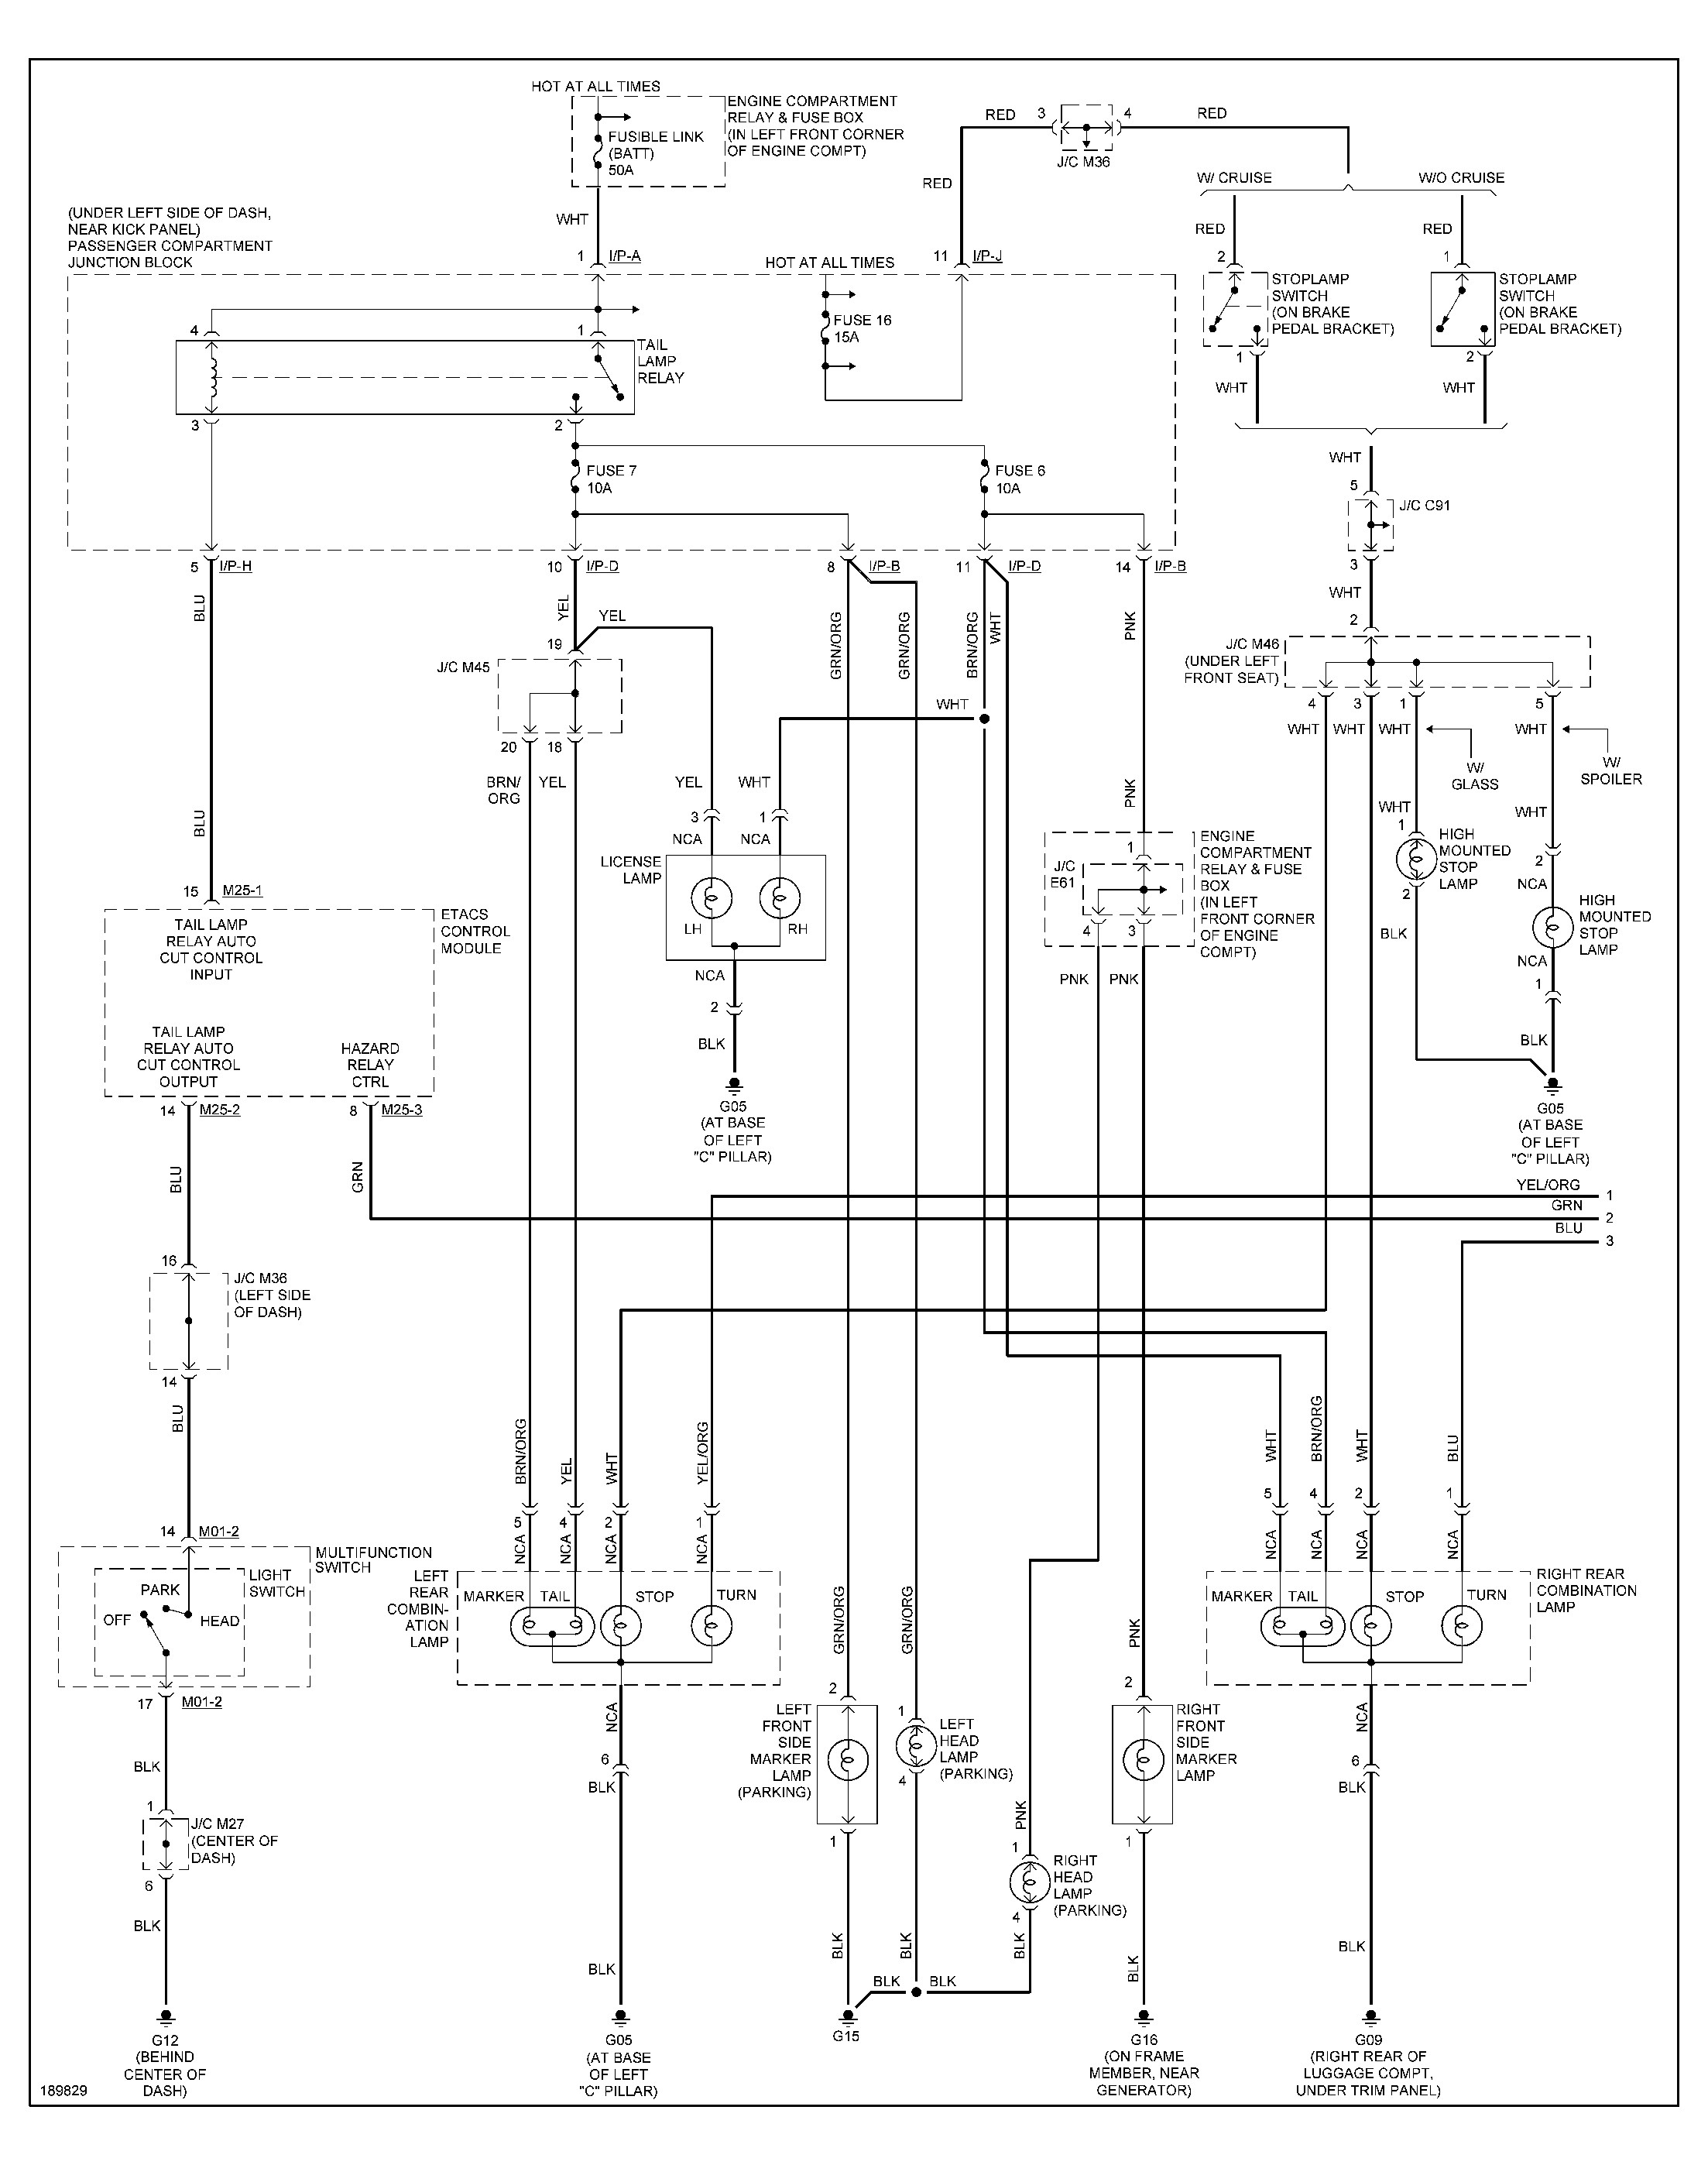 Power Acoustik In Dash Wiring Diagrams | Manual E-Books - Power Acoustik Pdn-626B Wiring Diagram